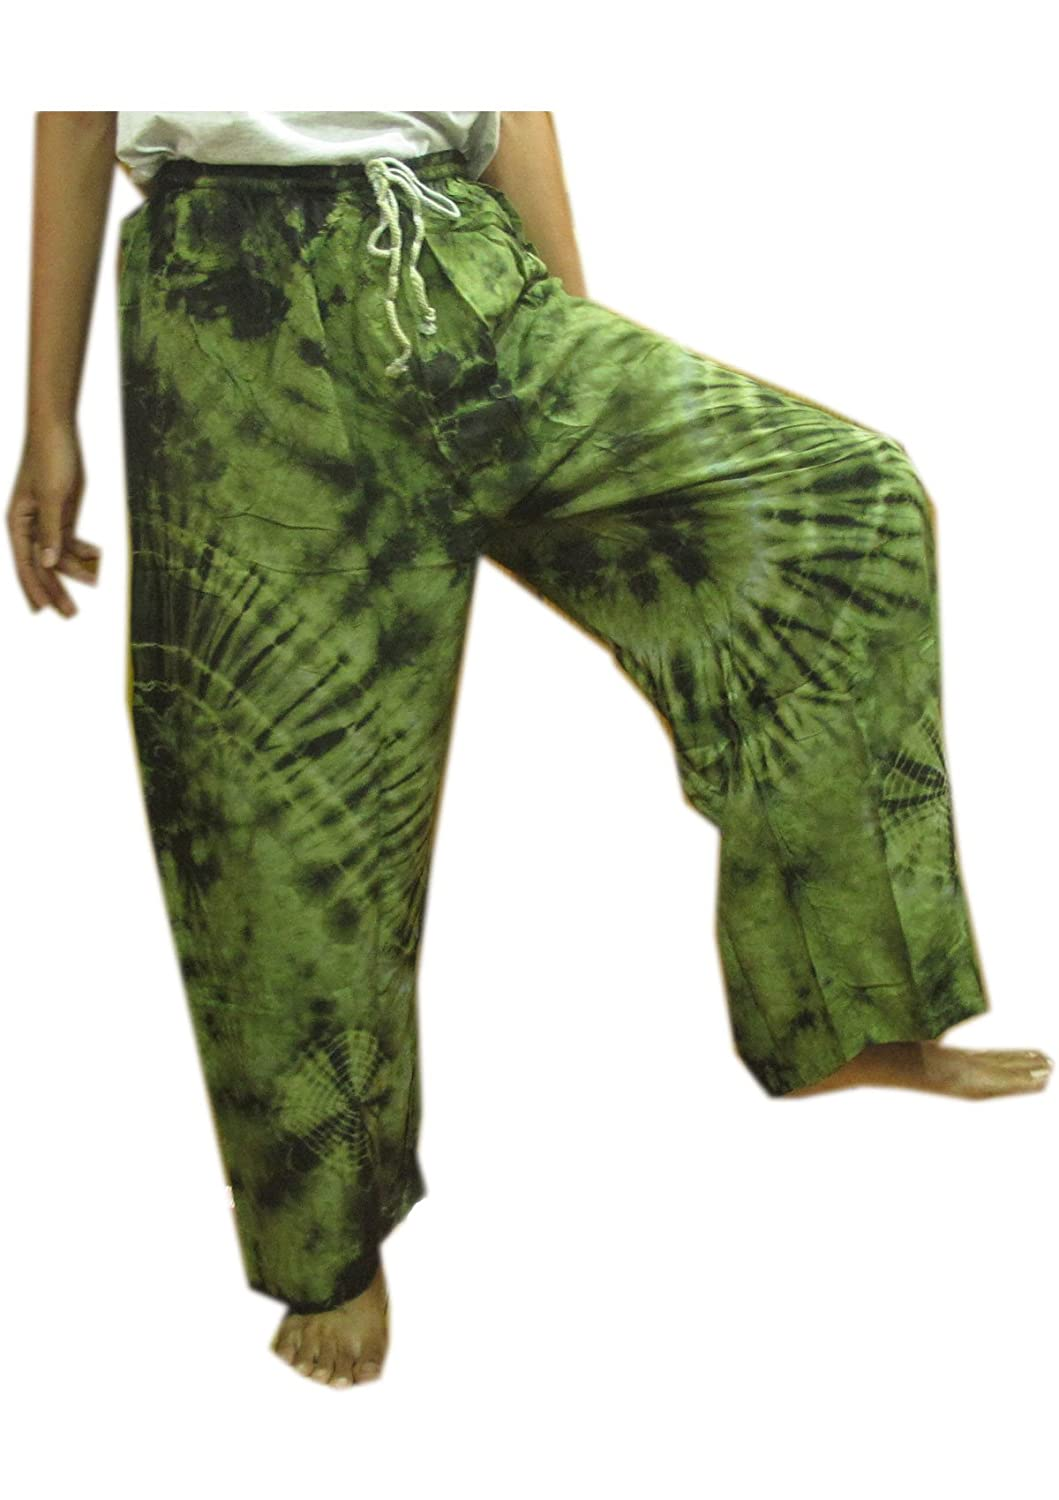 **UNIQUE BUY THIS ONE GET THIS ONE**GENUINE FINE COTTON RAYON TIE DYE FISHERMAN YOKA PANTS HIPPIE BAGGY TROUSERS FREE SIZE FIT FOR 25 - 39 INCHES ADJUSTABLE LENGTH 47 INCHES